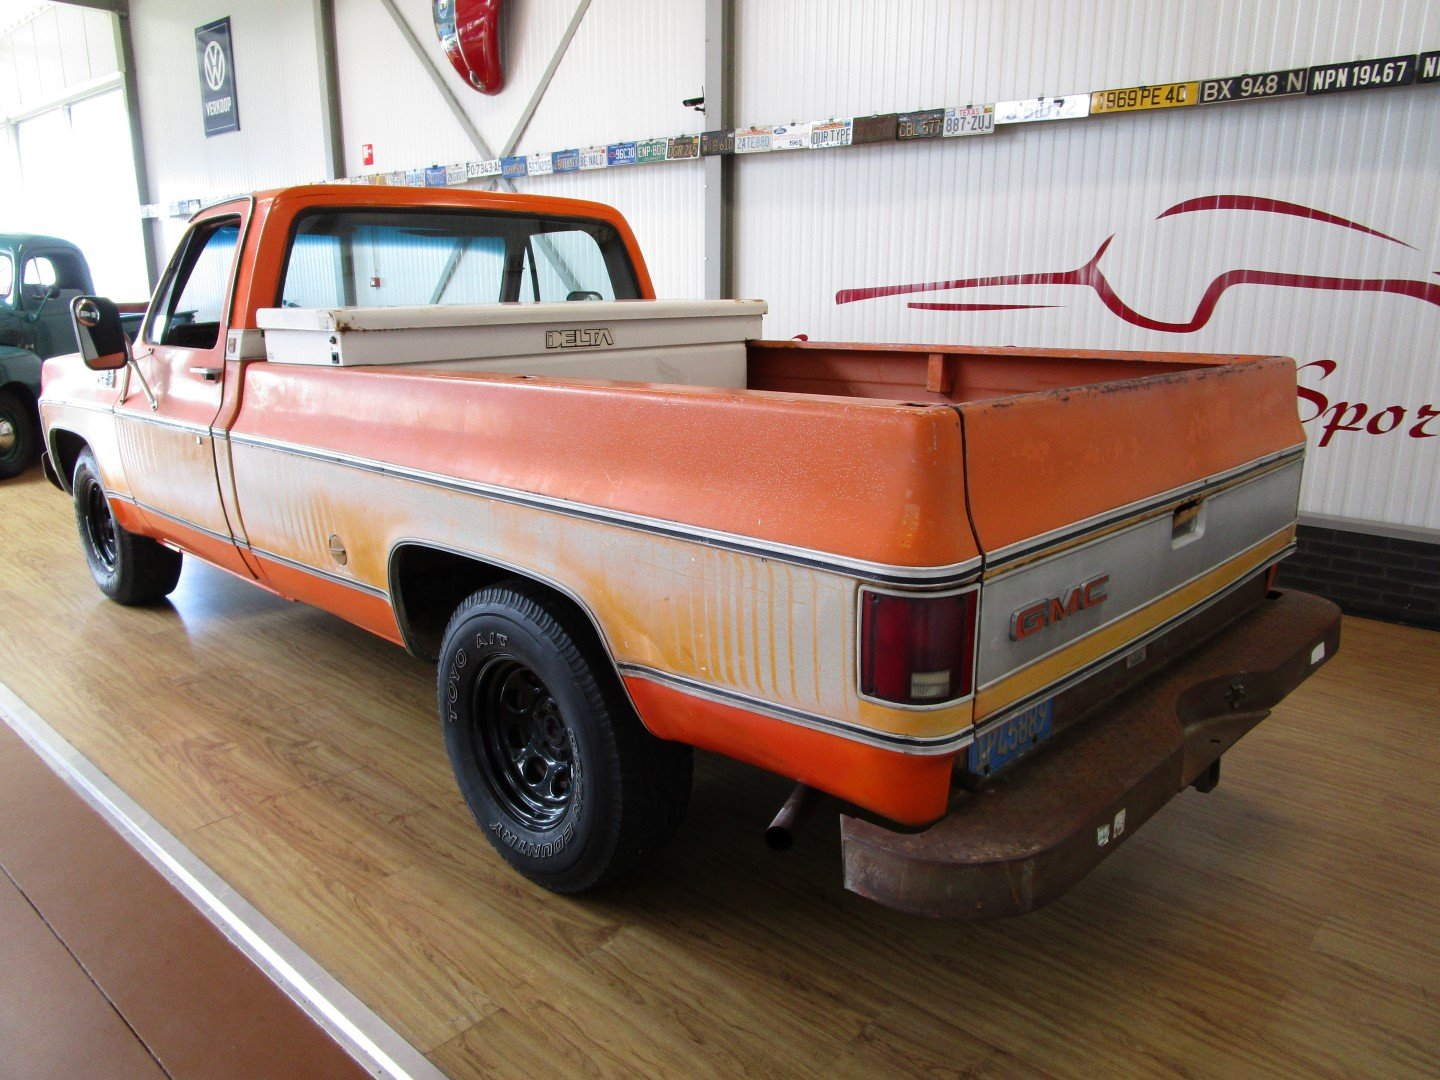 1976 GMC 15 Sierra Classic 350CU V8 Longbed Pick Up For Sale (picture 3 of 6)